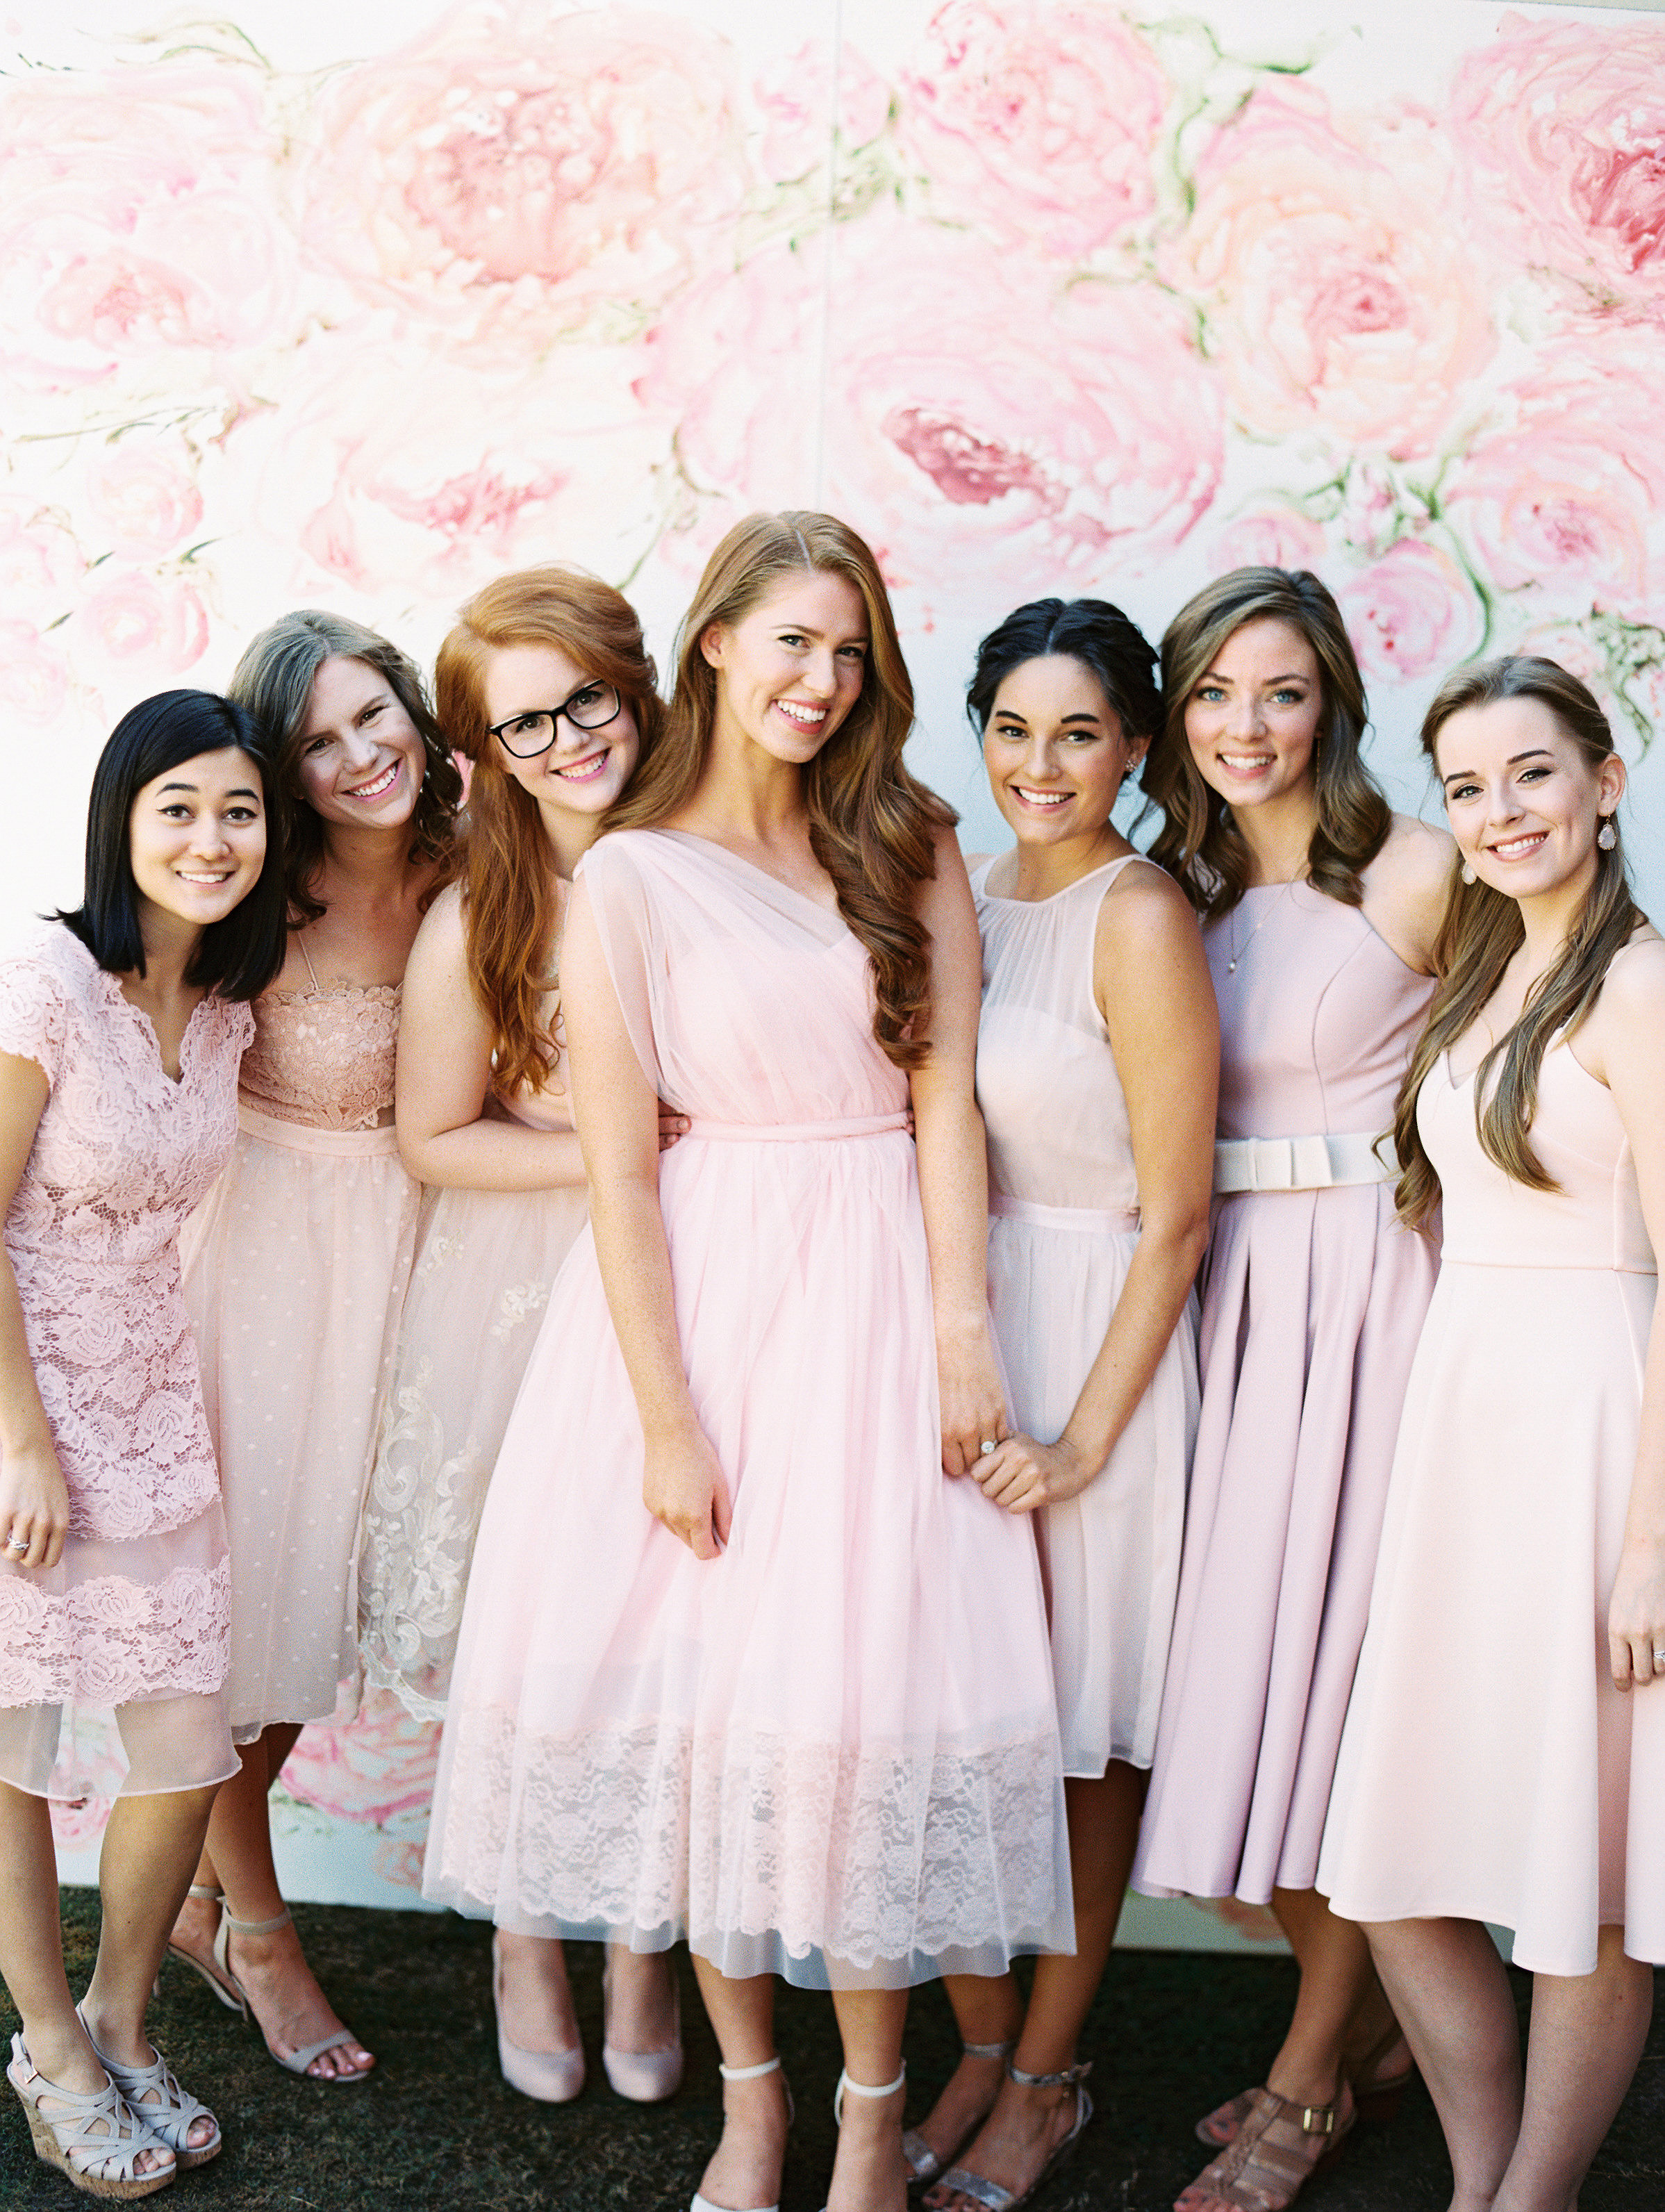 Are you in charge of planning the bachelorette party?